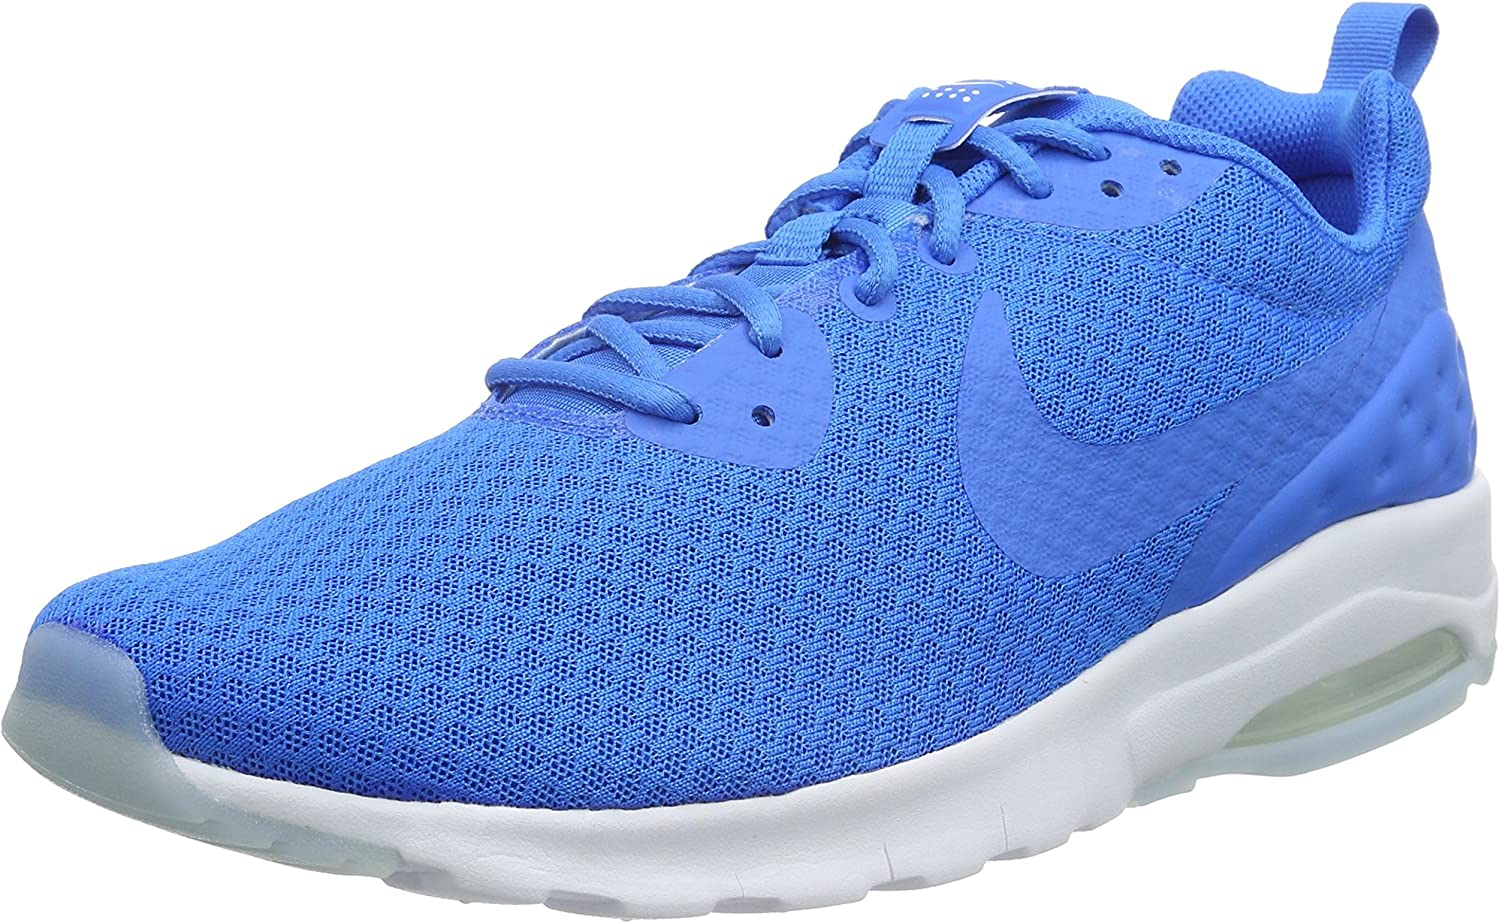 Nike Men's Photo bluee Air Max Motion LW Althletic Sneakers shoes